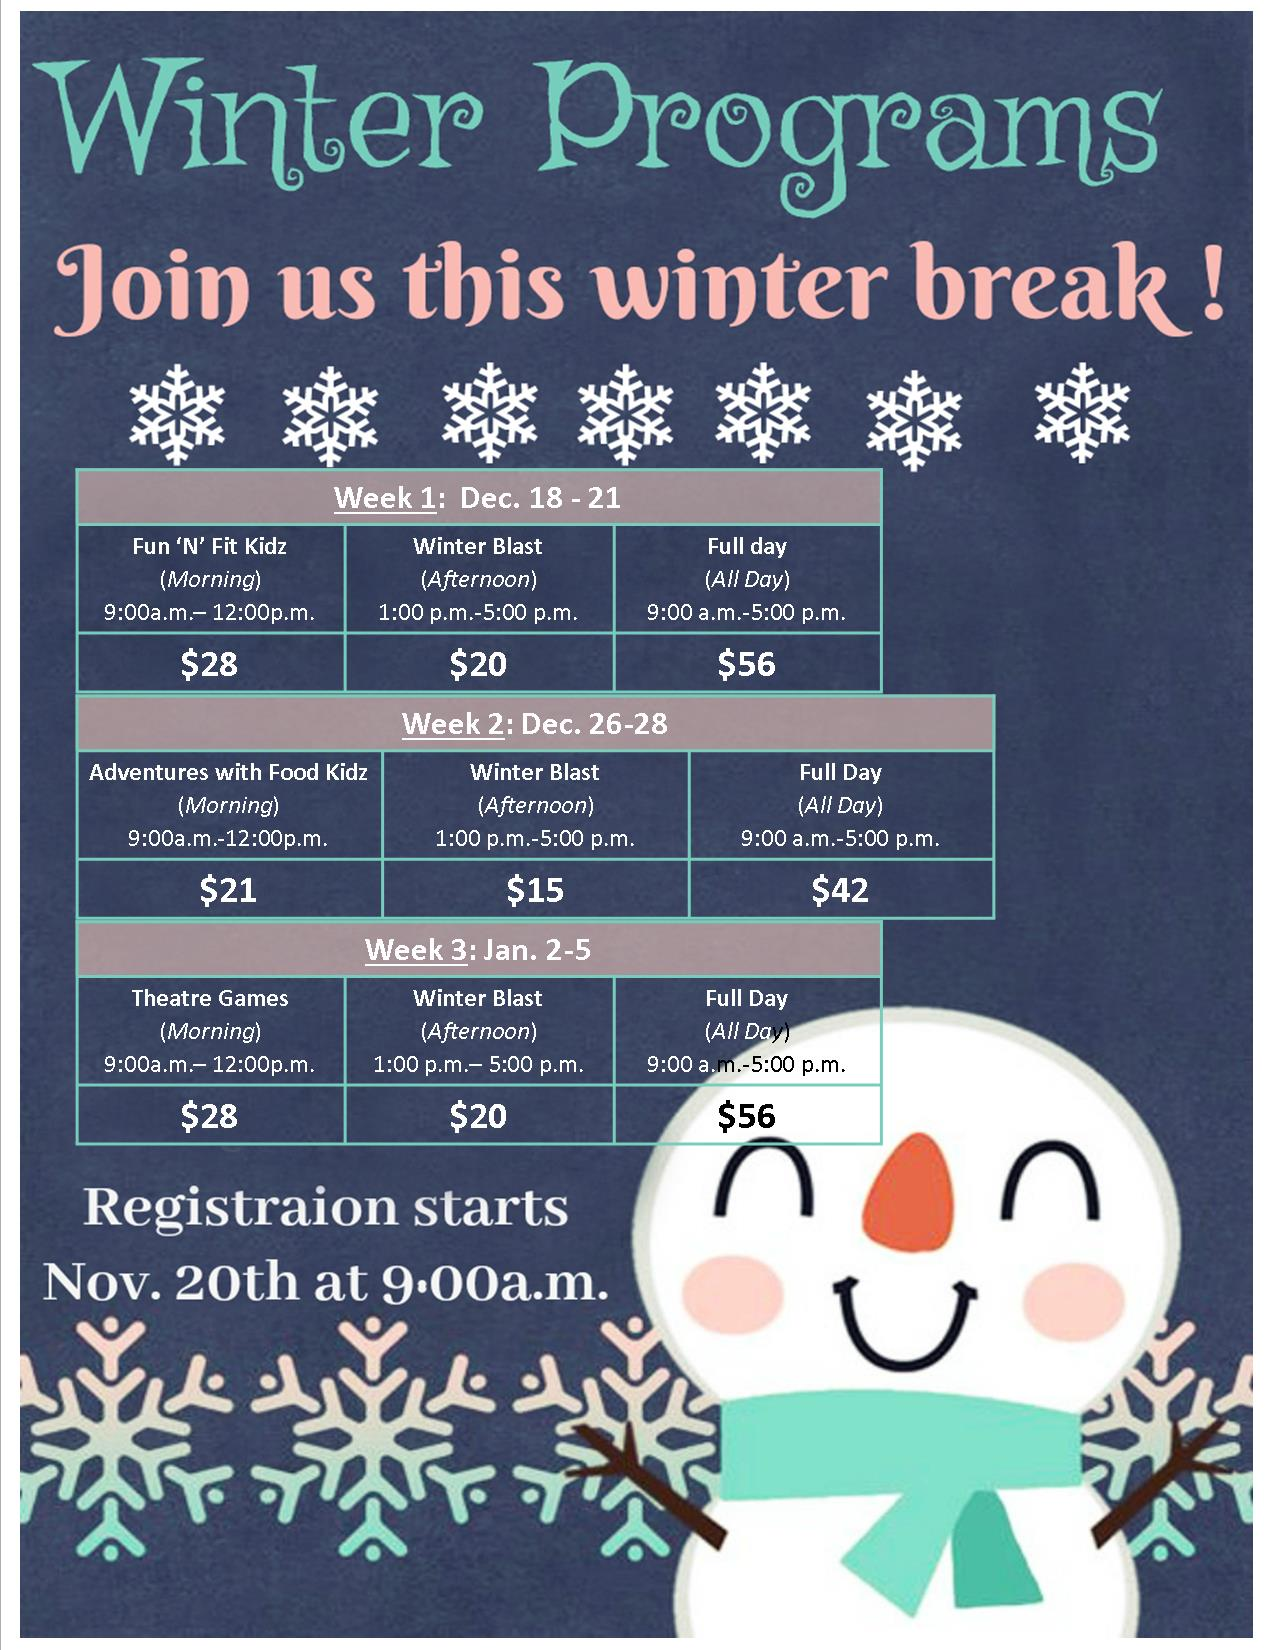 2017 Winter Programs Information